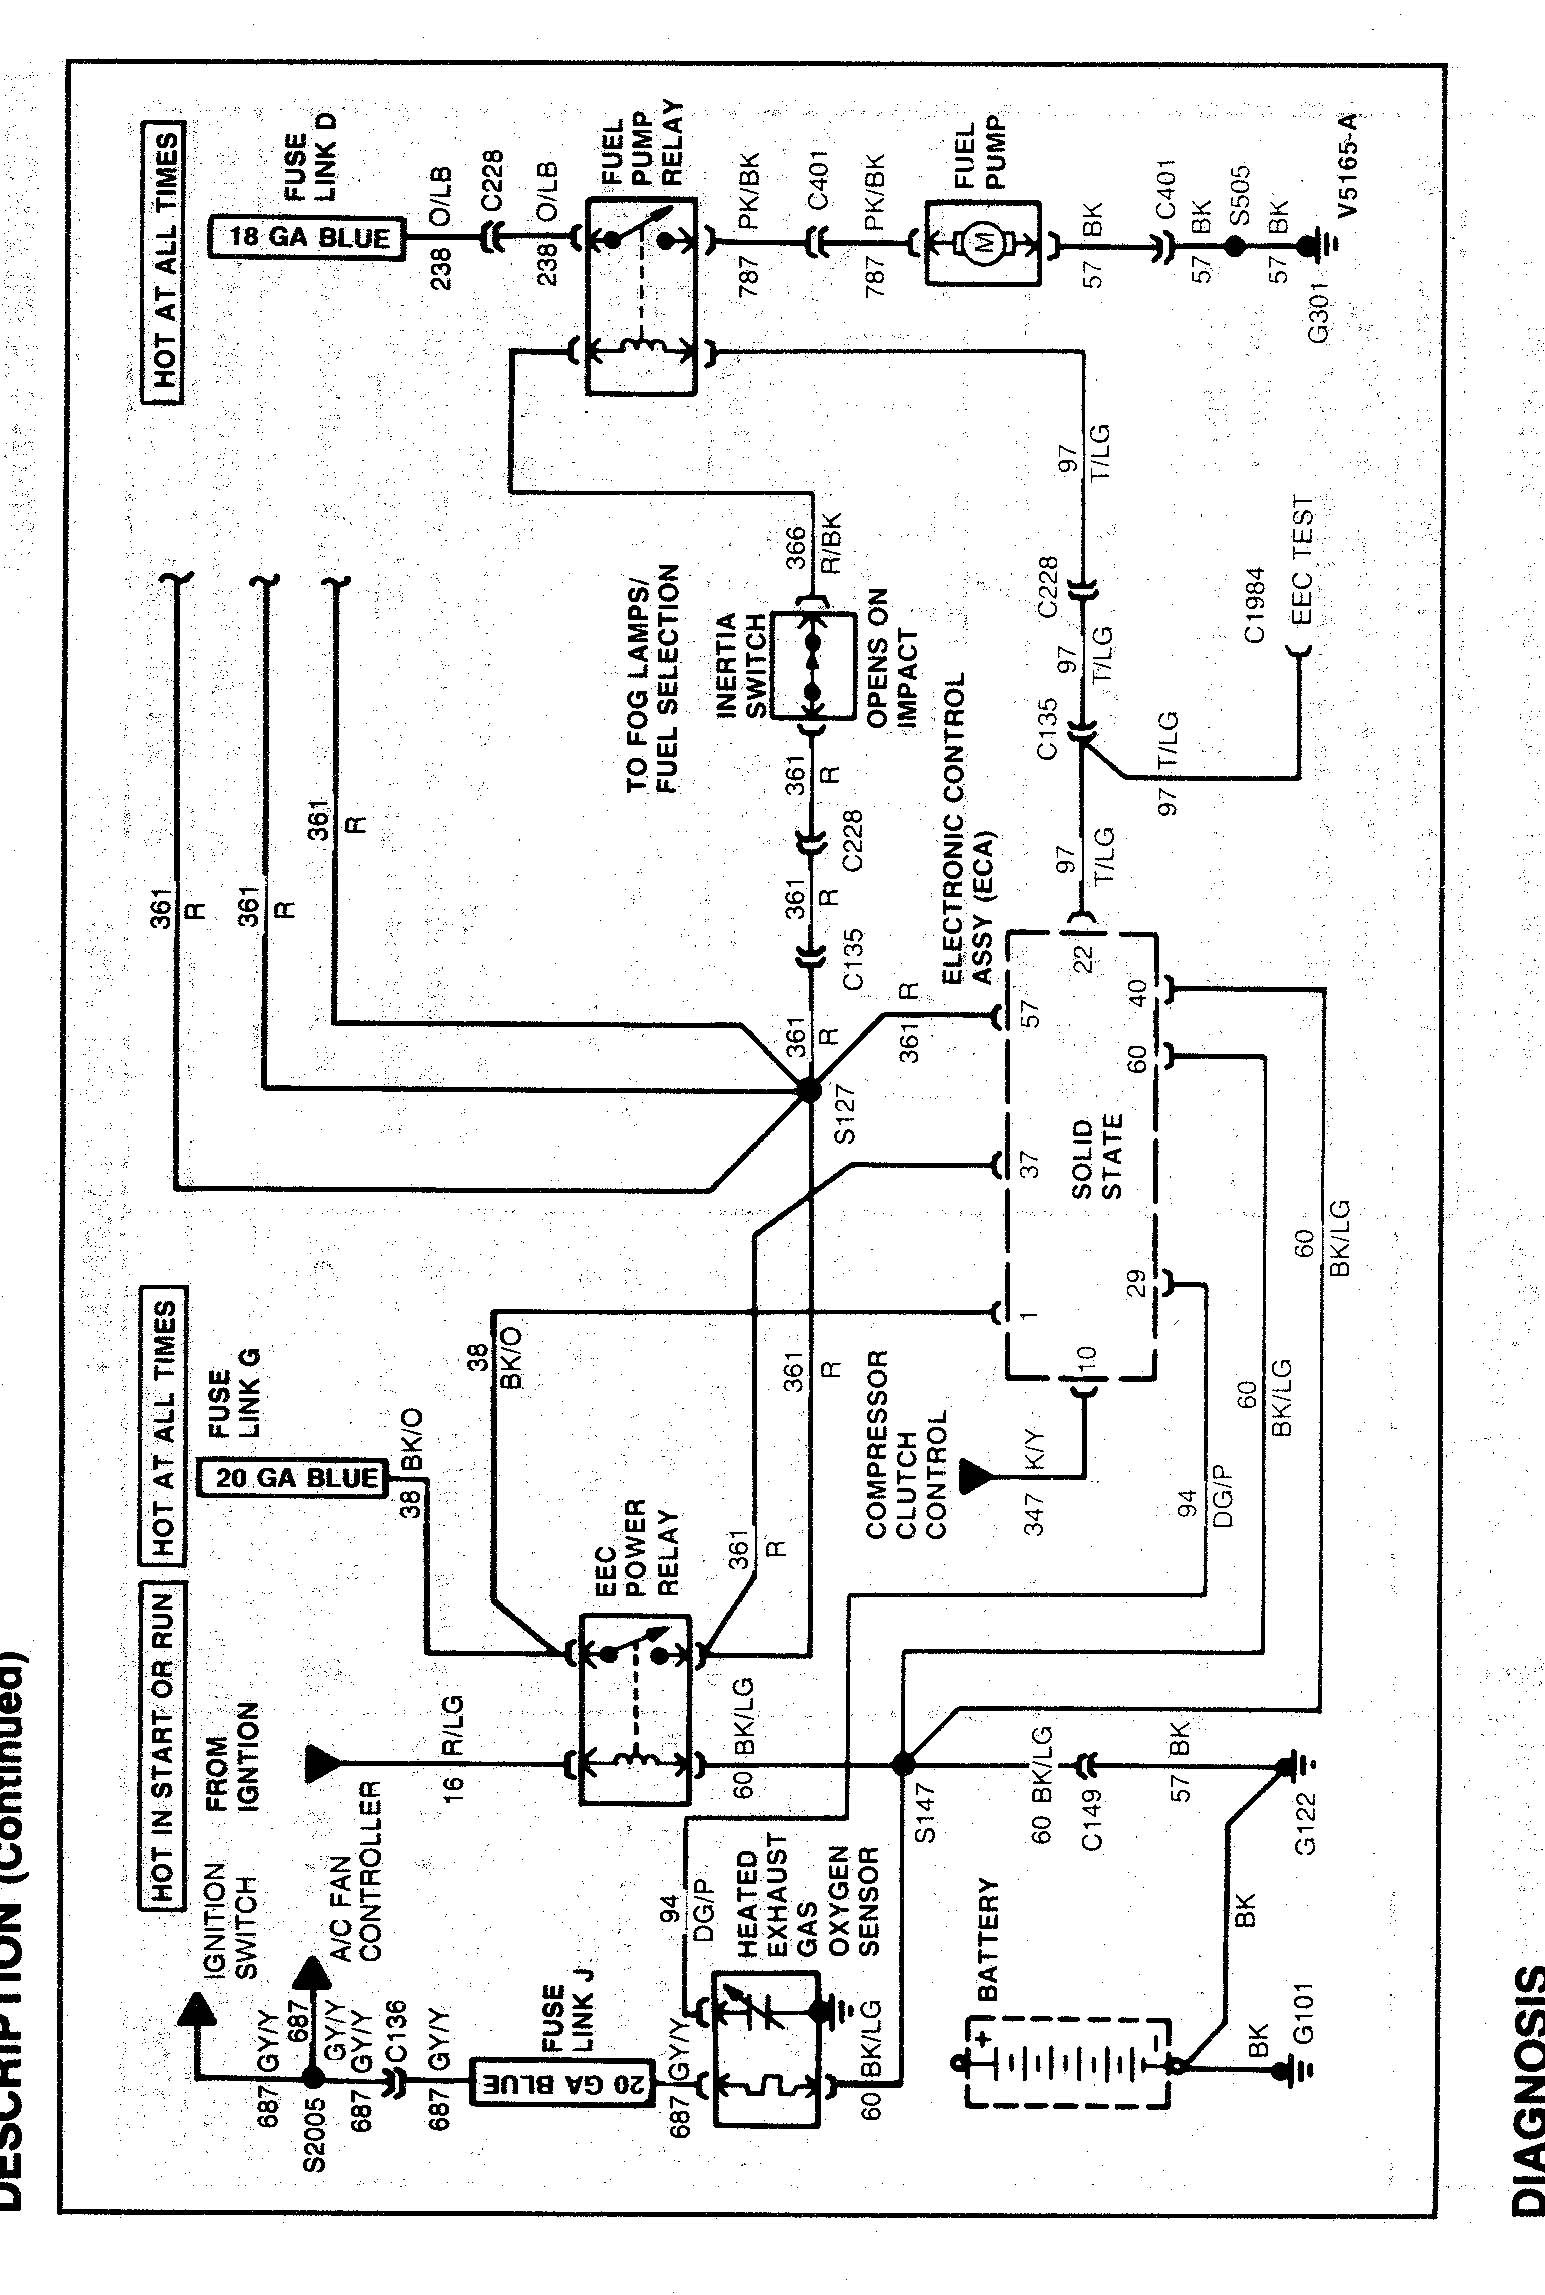 1987 mustang wiring diagram wiring diagram and schematic design 95 mustang gt instrument cer wiring diagram 1993 ford ranger